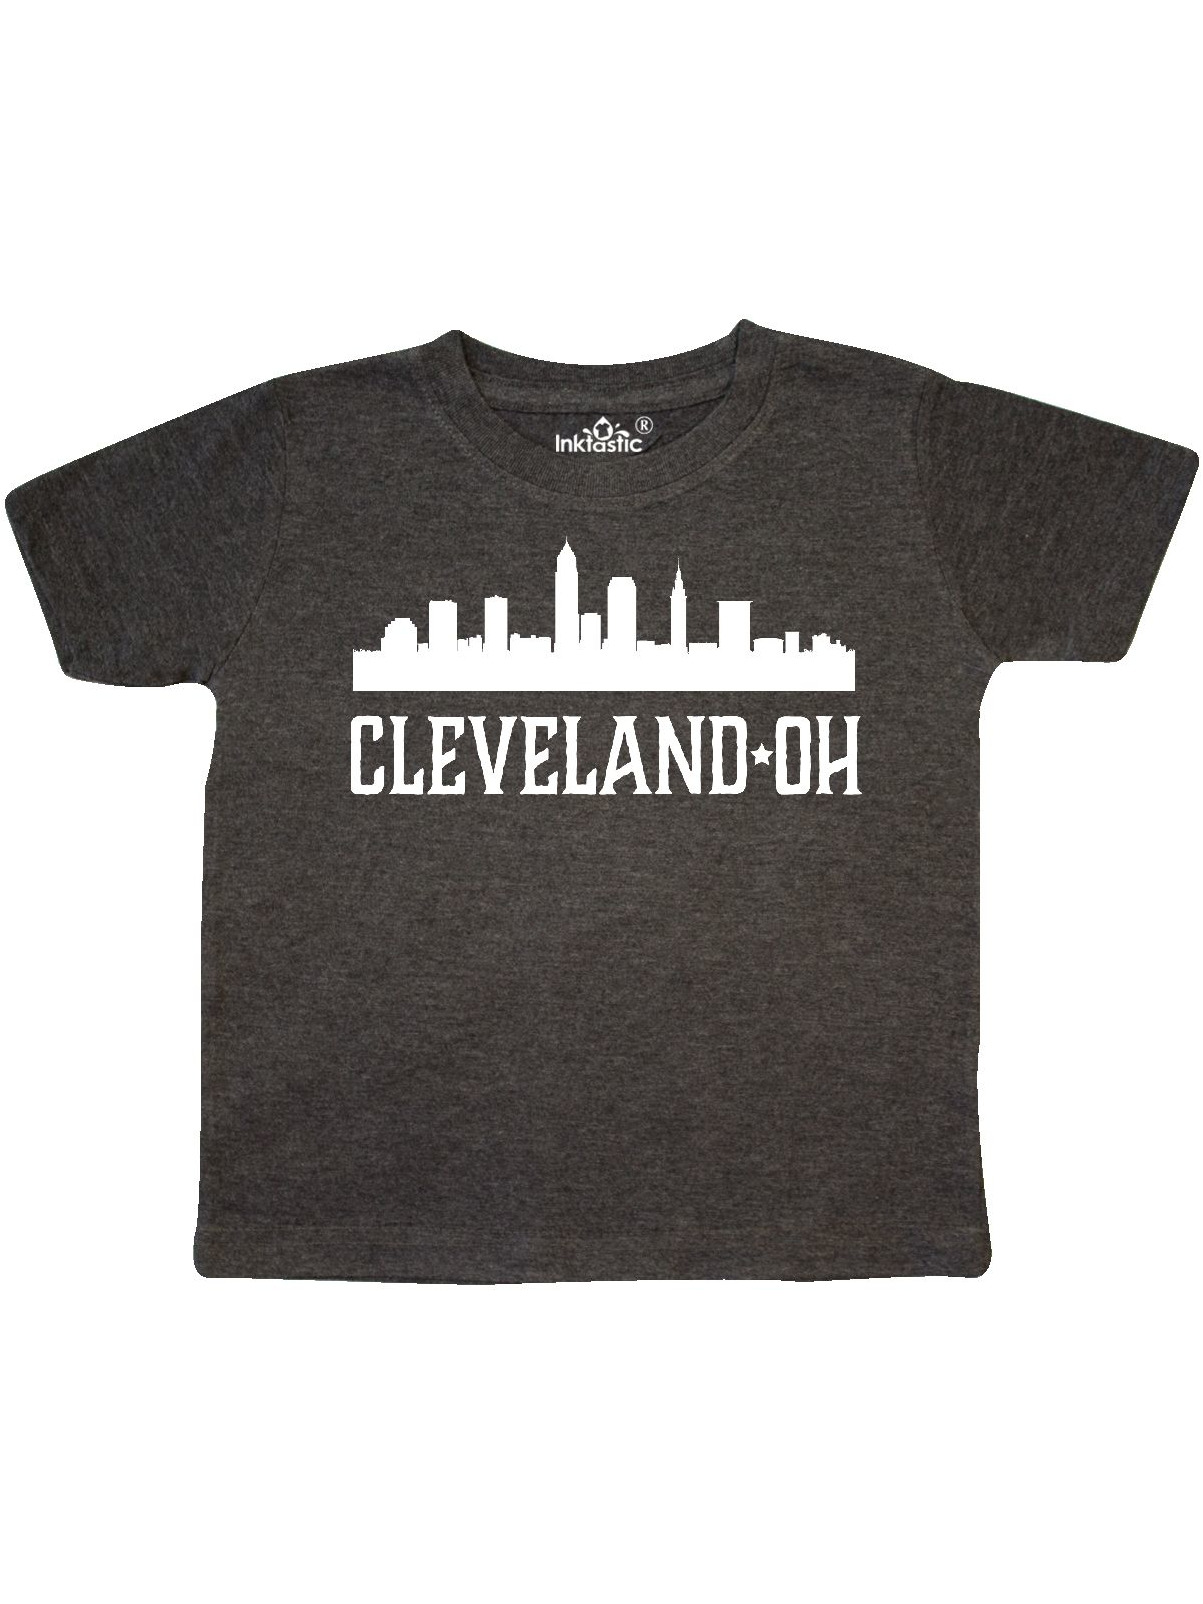 Inktastic Cleveland Ohio T-Shirt Red Sihlouette Home Gift For Her Him Mens Adult